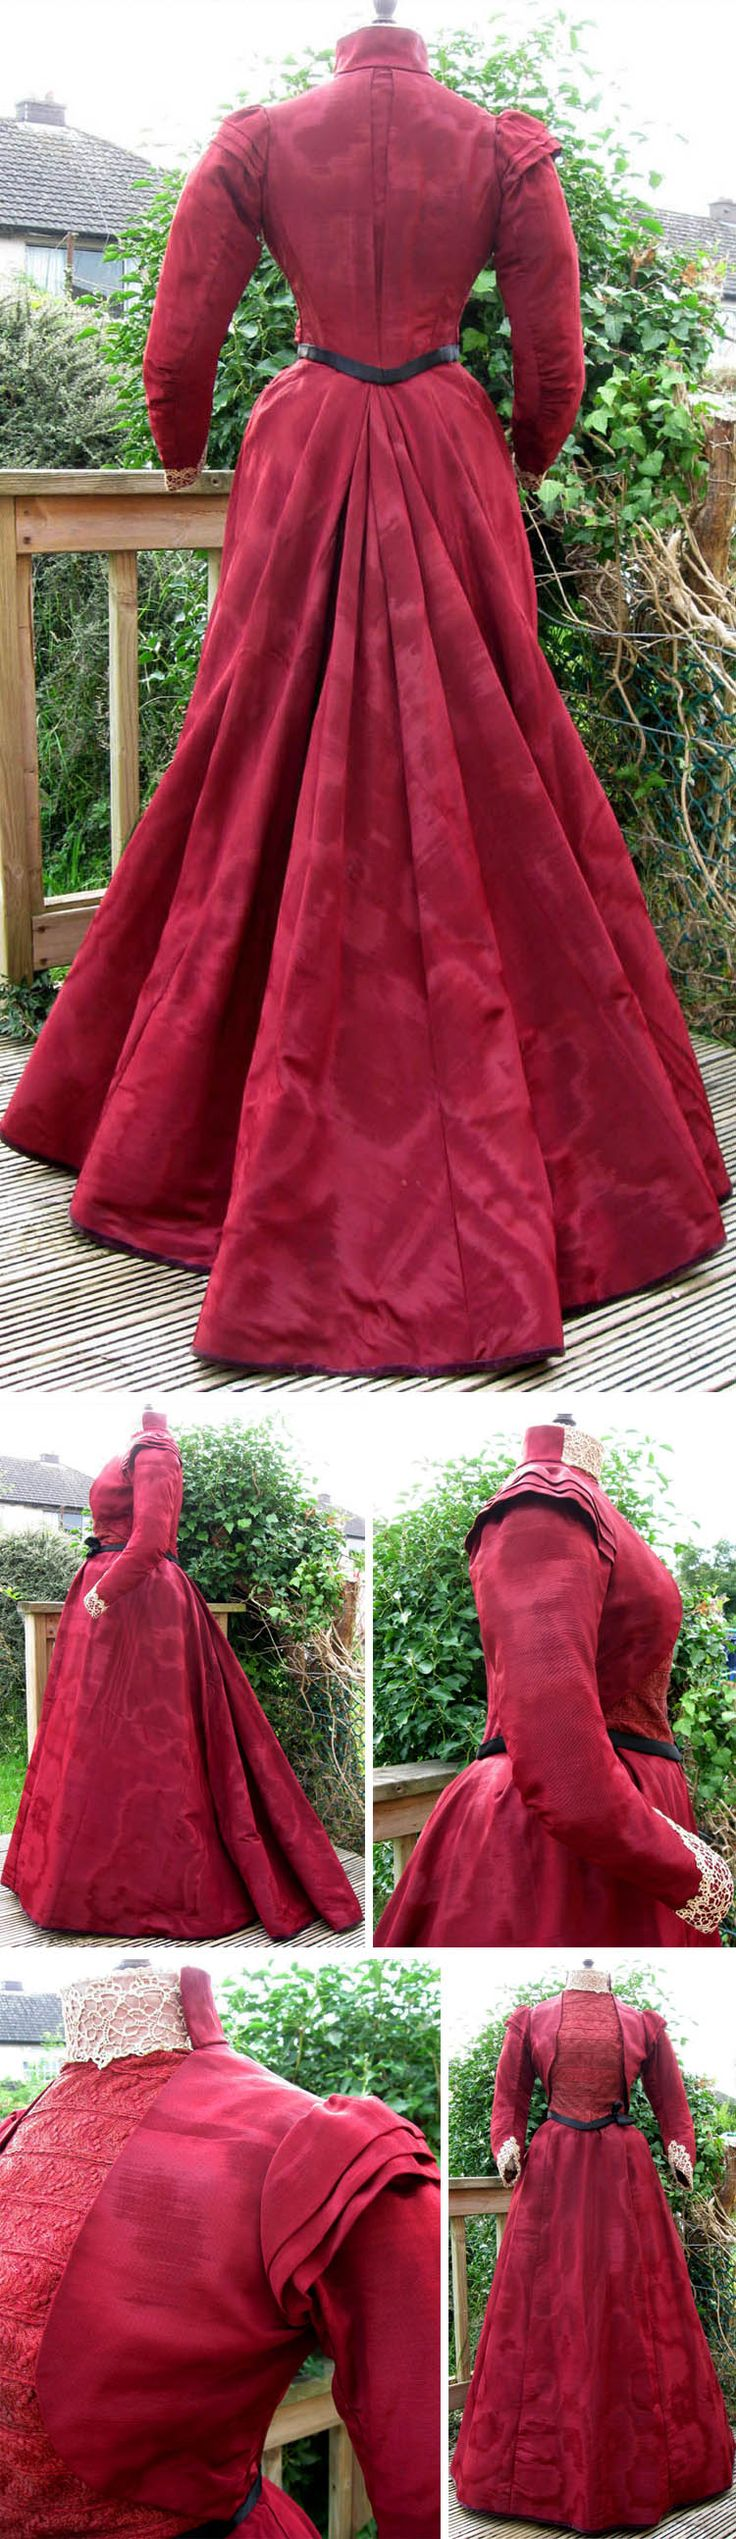 Burgundy-colored silk moiré winter walking or reception/day dress, ca. 1891-95. madaboutfans/ebay